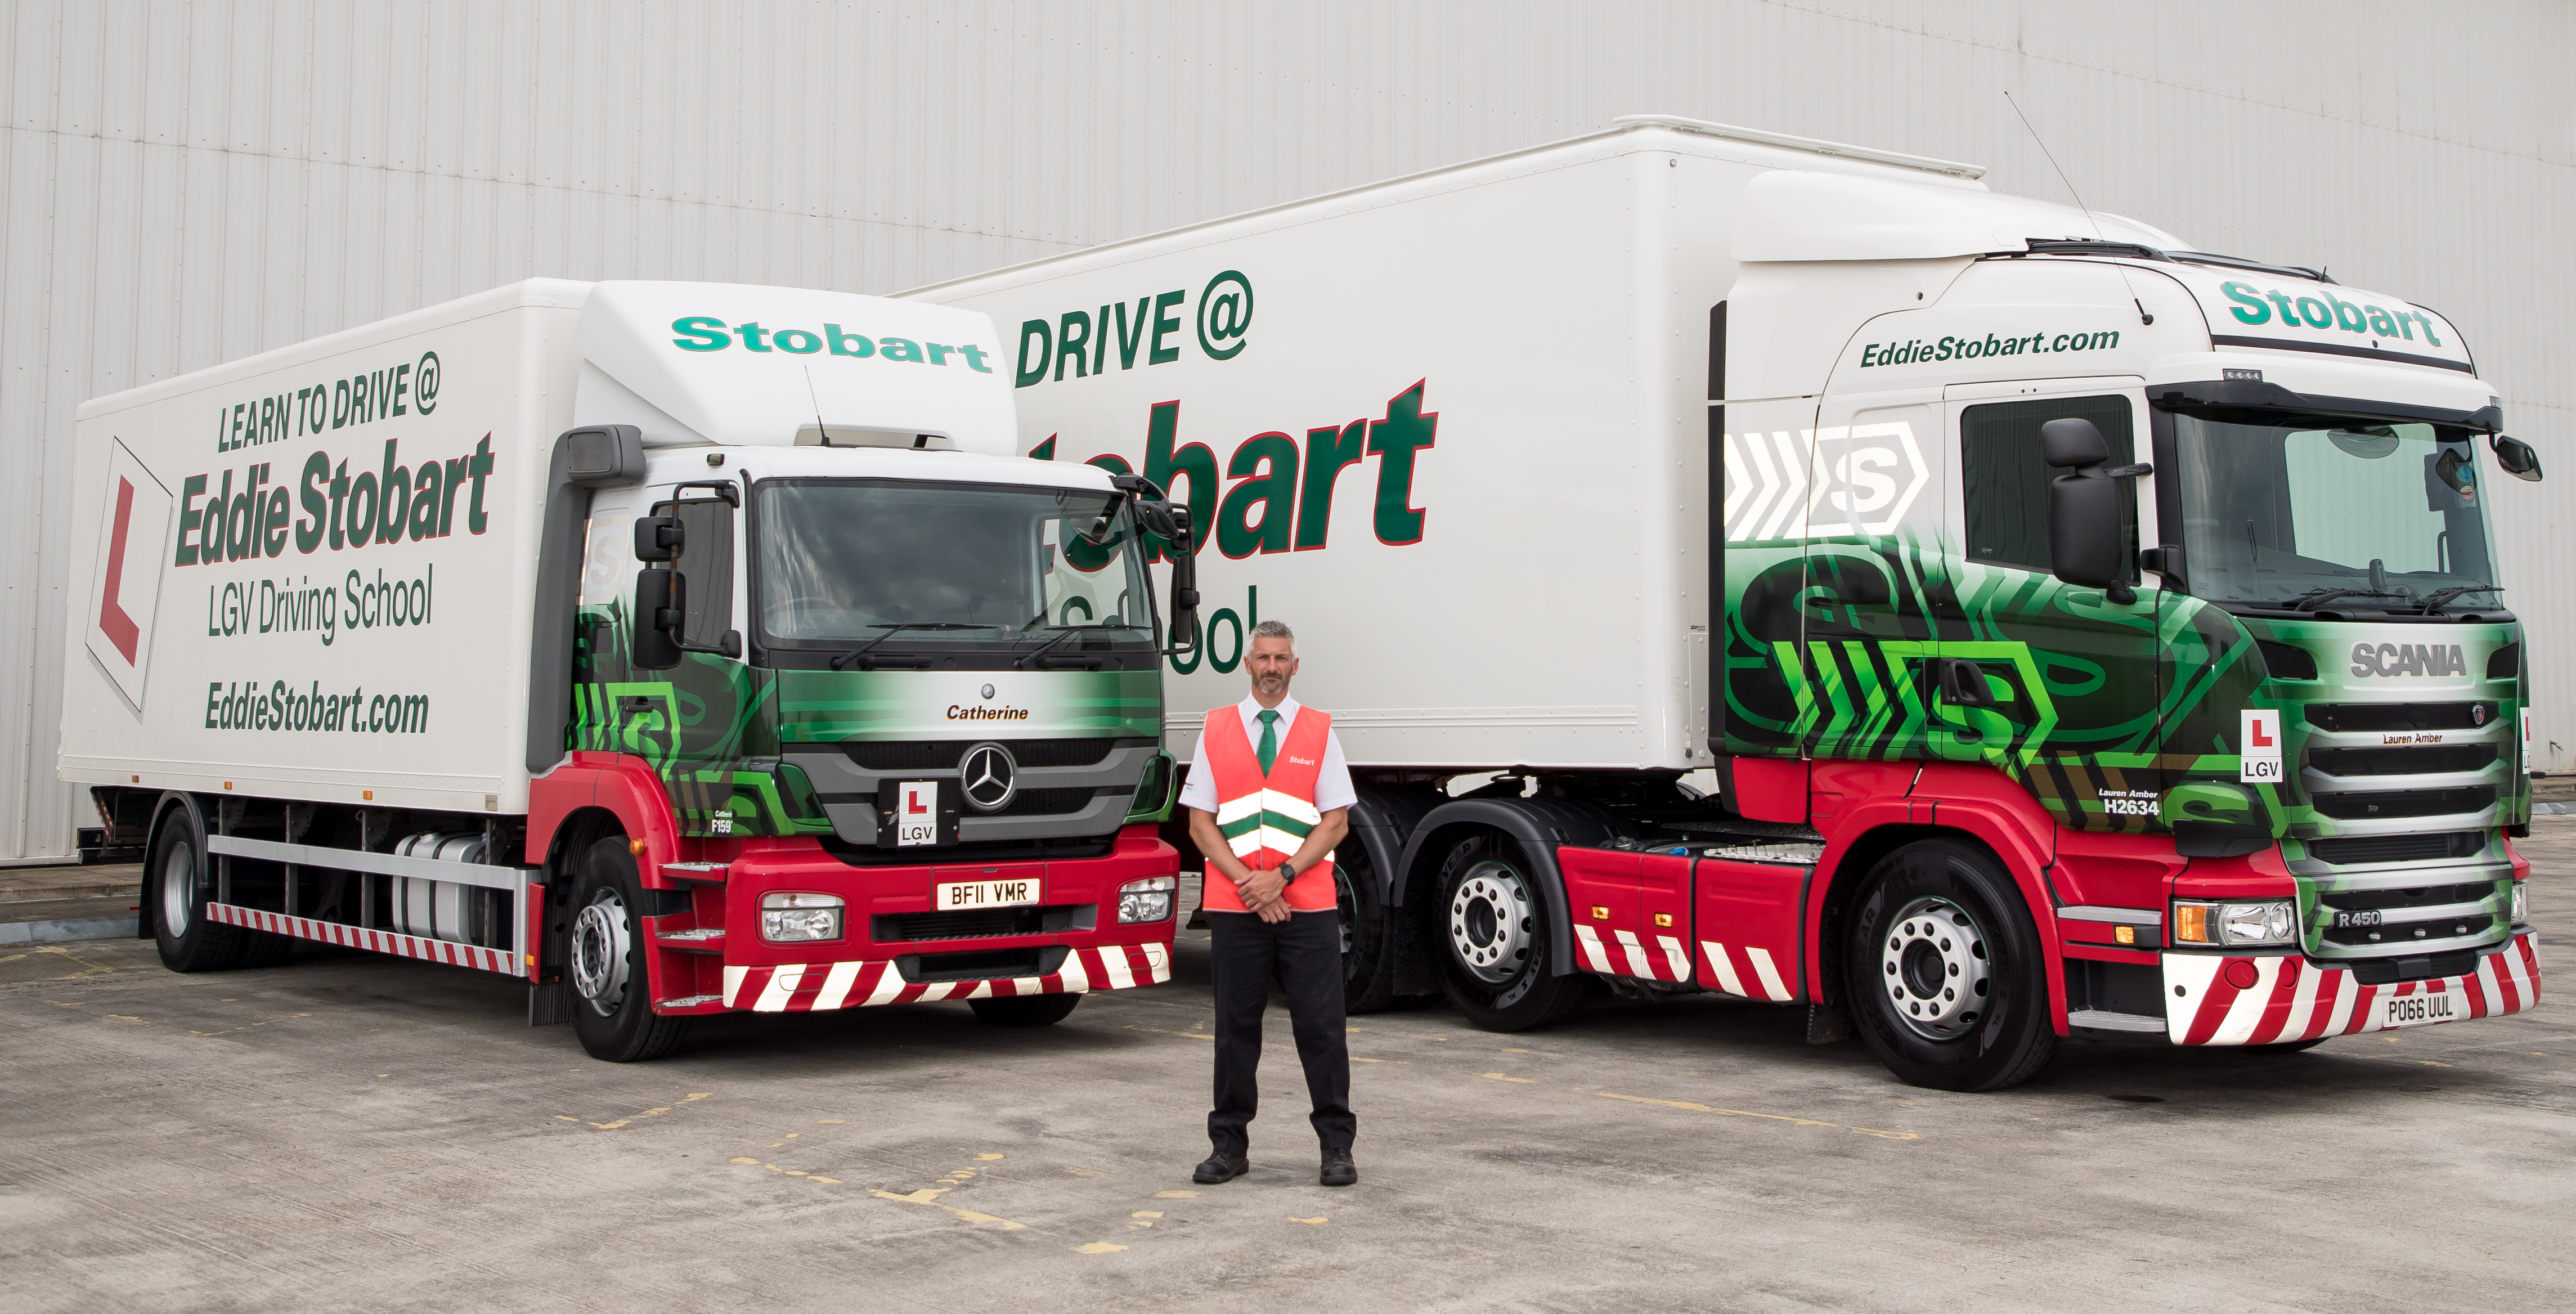 HOW TO BECOME AN EDDIE STOBART WINDOWS XP DRIVER DOWNLOAD